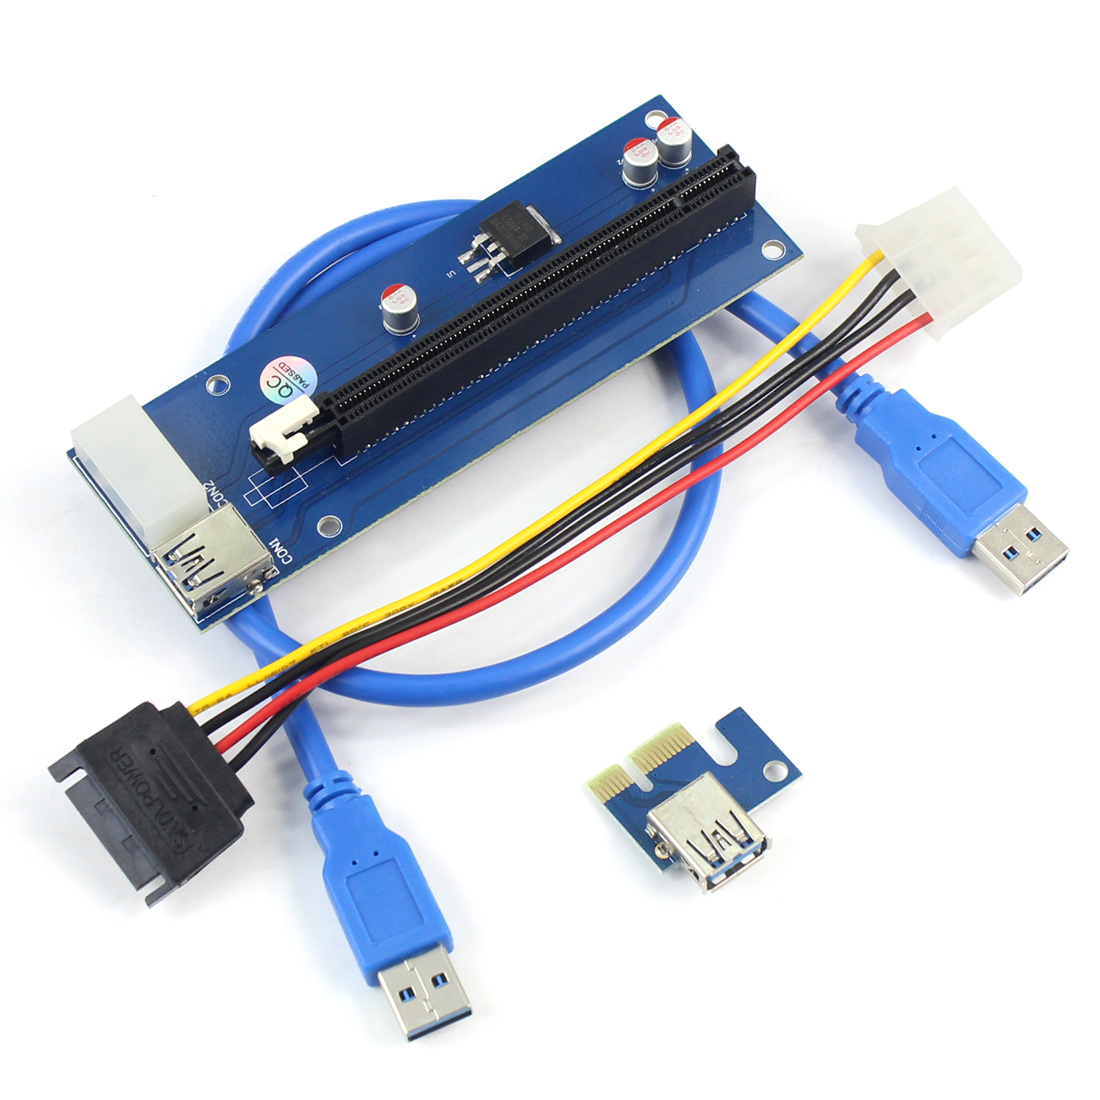 USB 3.0 PCI-E Express 1x to 16x Extender Riser Card Adapter Pcie 1 to 4 USB Convertor Graphics Video card for Miner BTC Litcoin-1